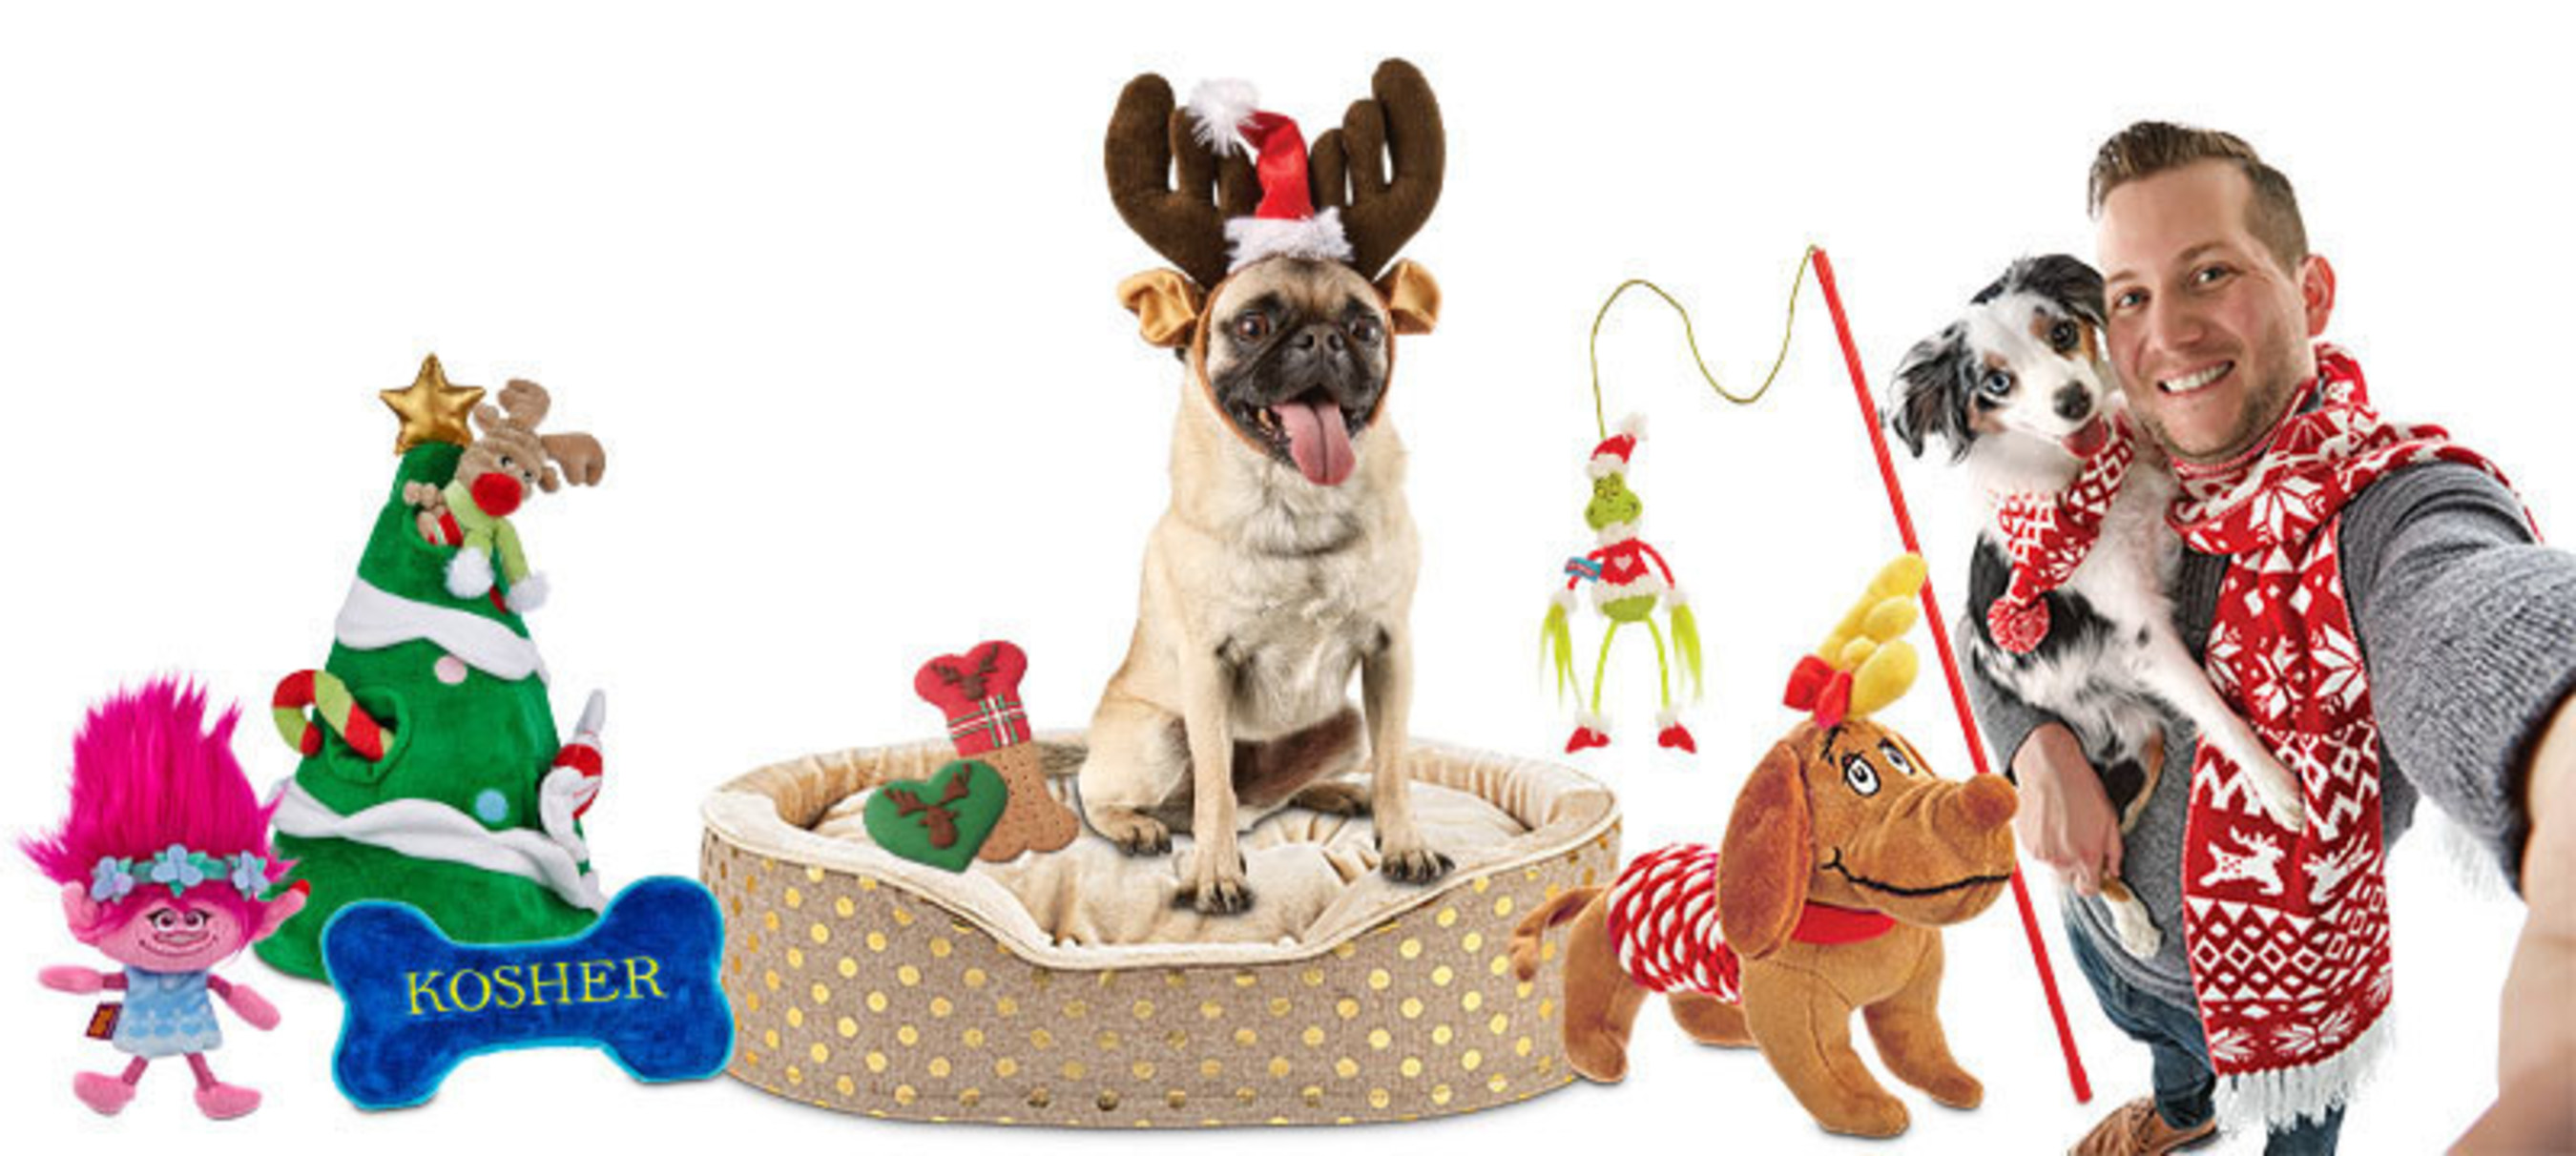 84 percent of pet parents surveyed by Petco confirmed they plan to buy holiday presents for their four-legged family members; 50 percent will also purchase a gift for a friend or relative's pet.